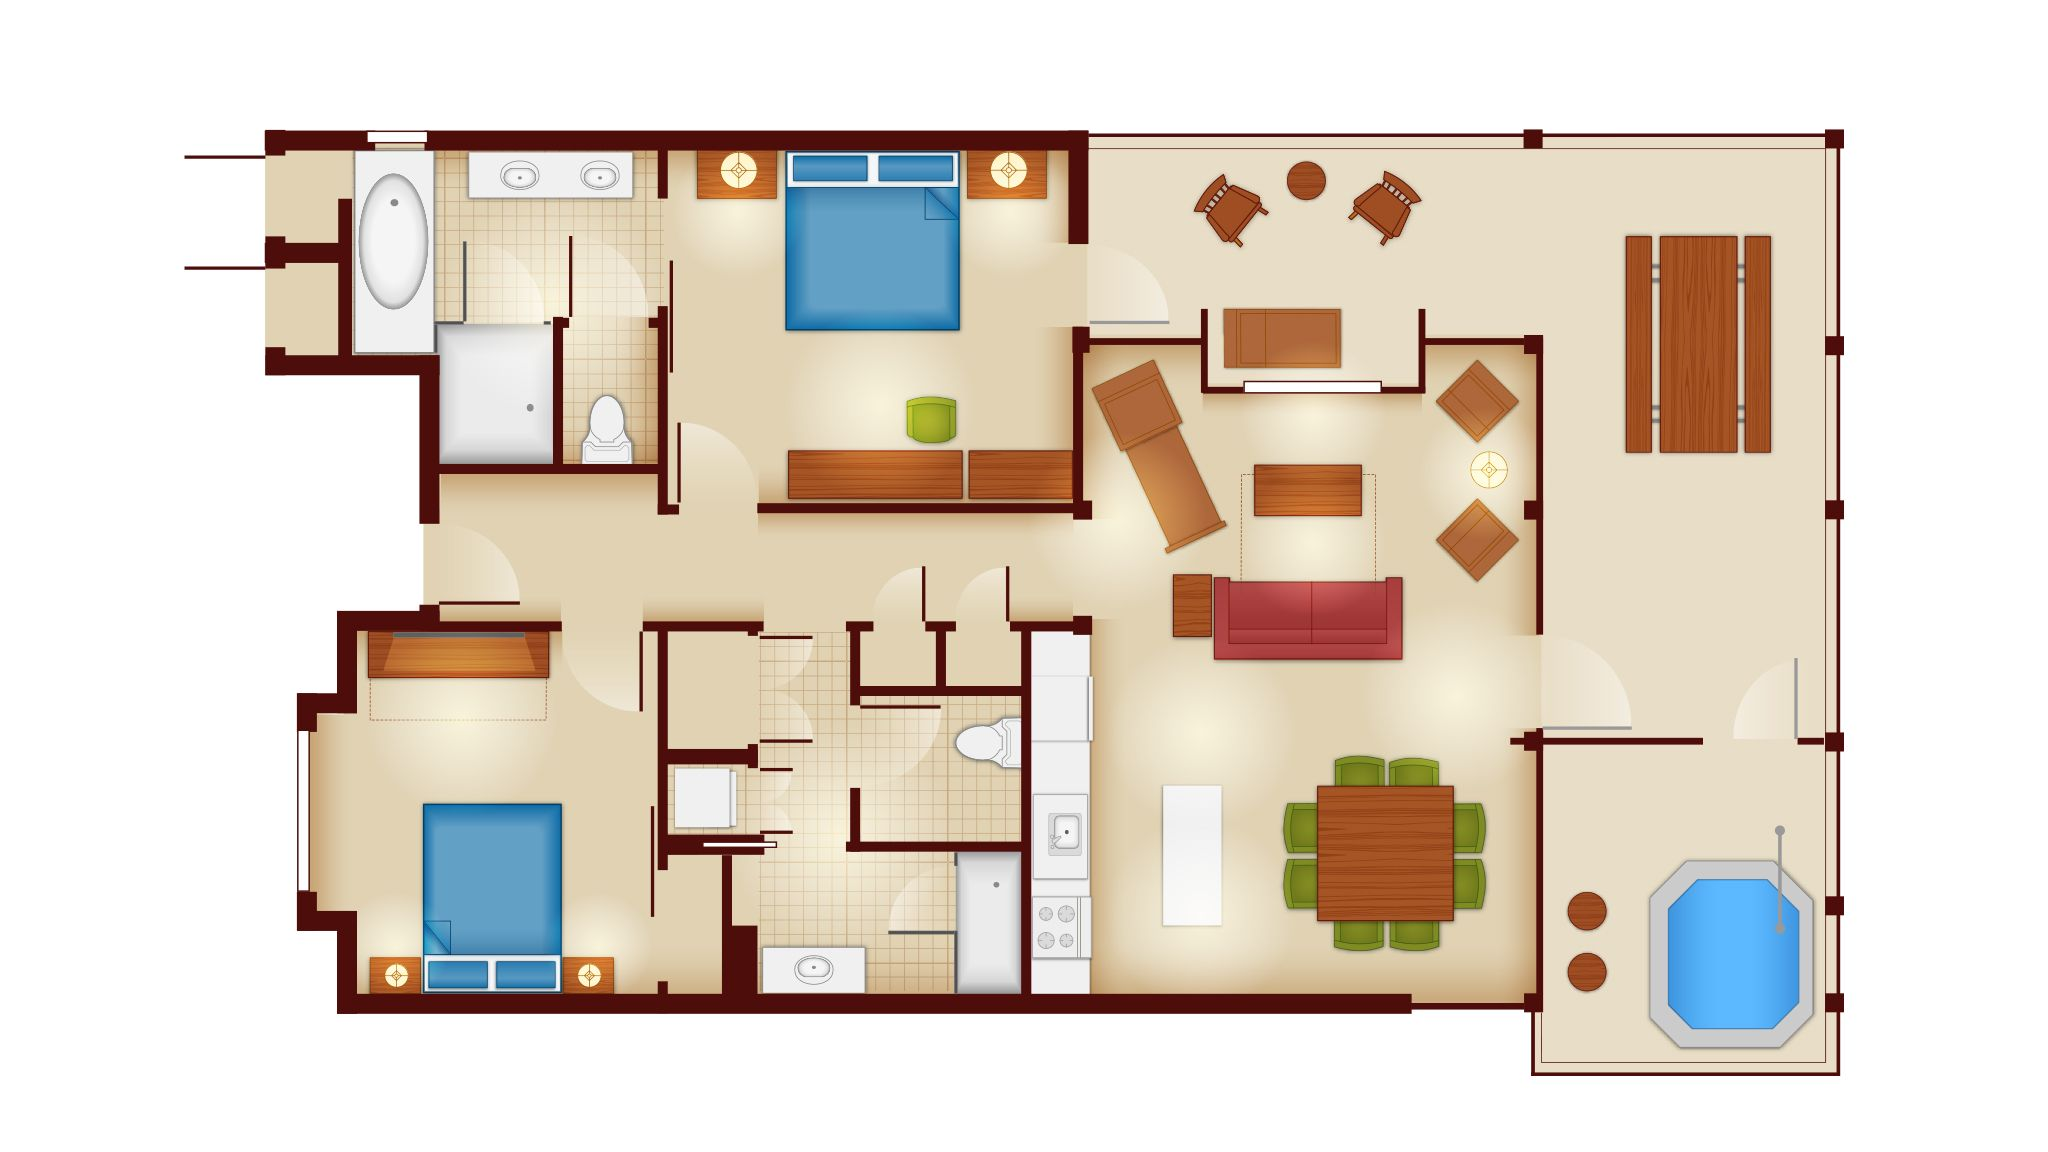 Copper Creek Villas And Cabins At Disney S Wilderness Lodge Rooms And Floor Plans Photo 4 Of 12 Copper Creek Cabin Floor Plans Cabin Floor